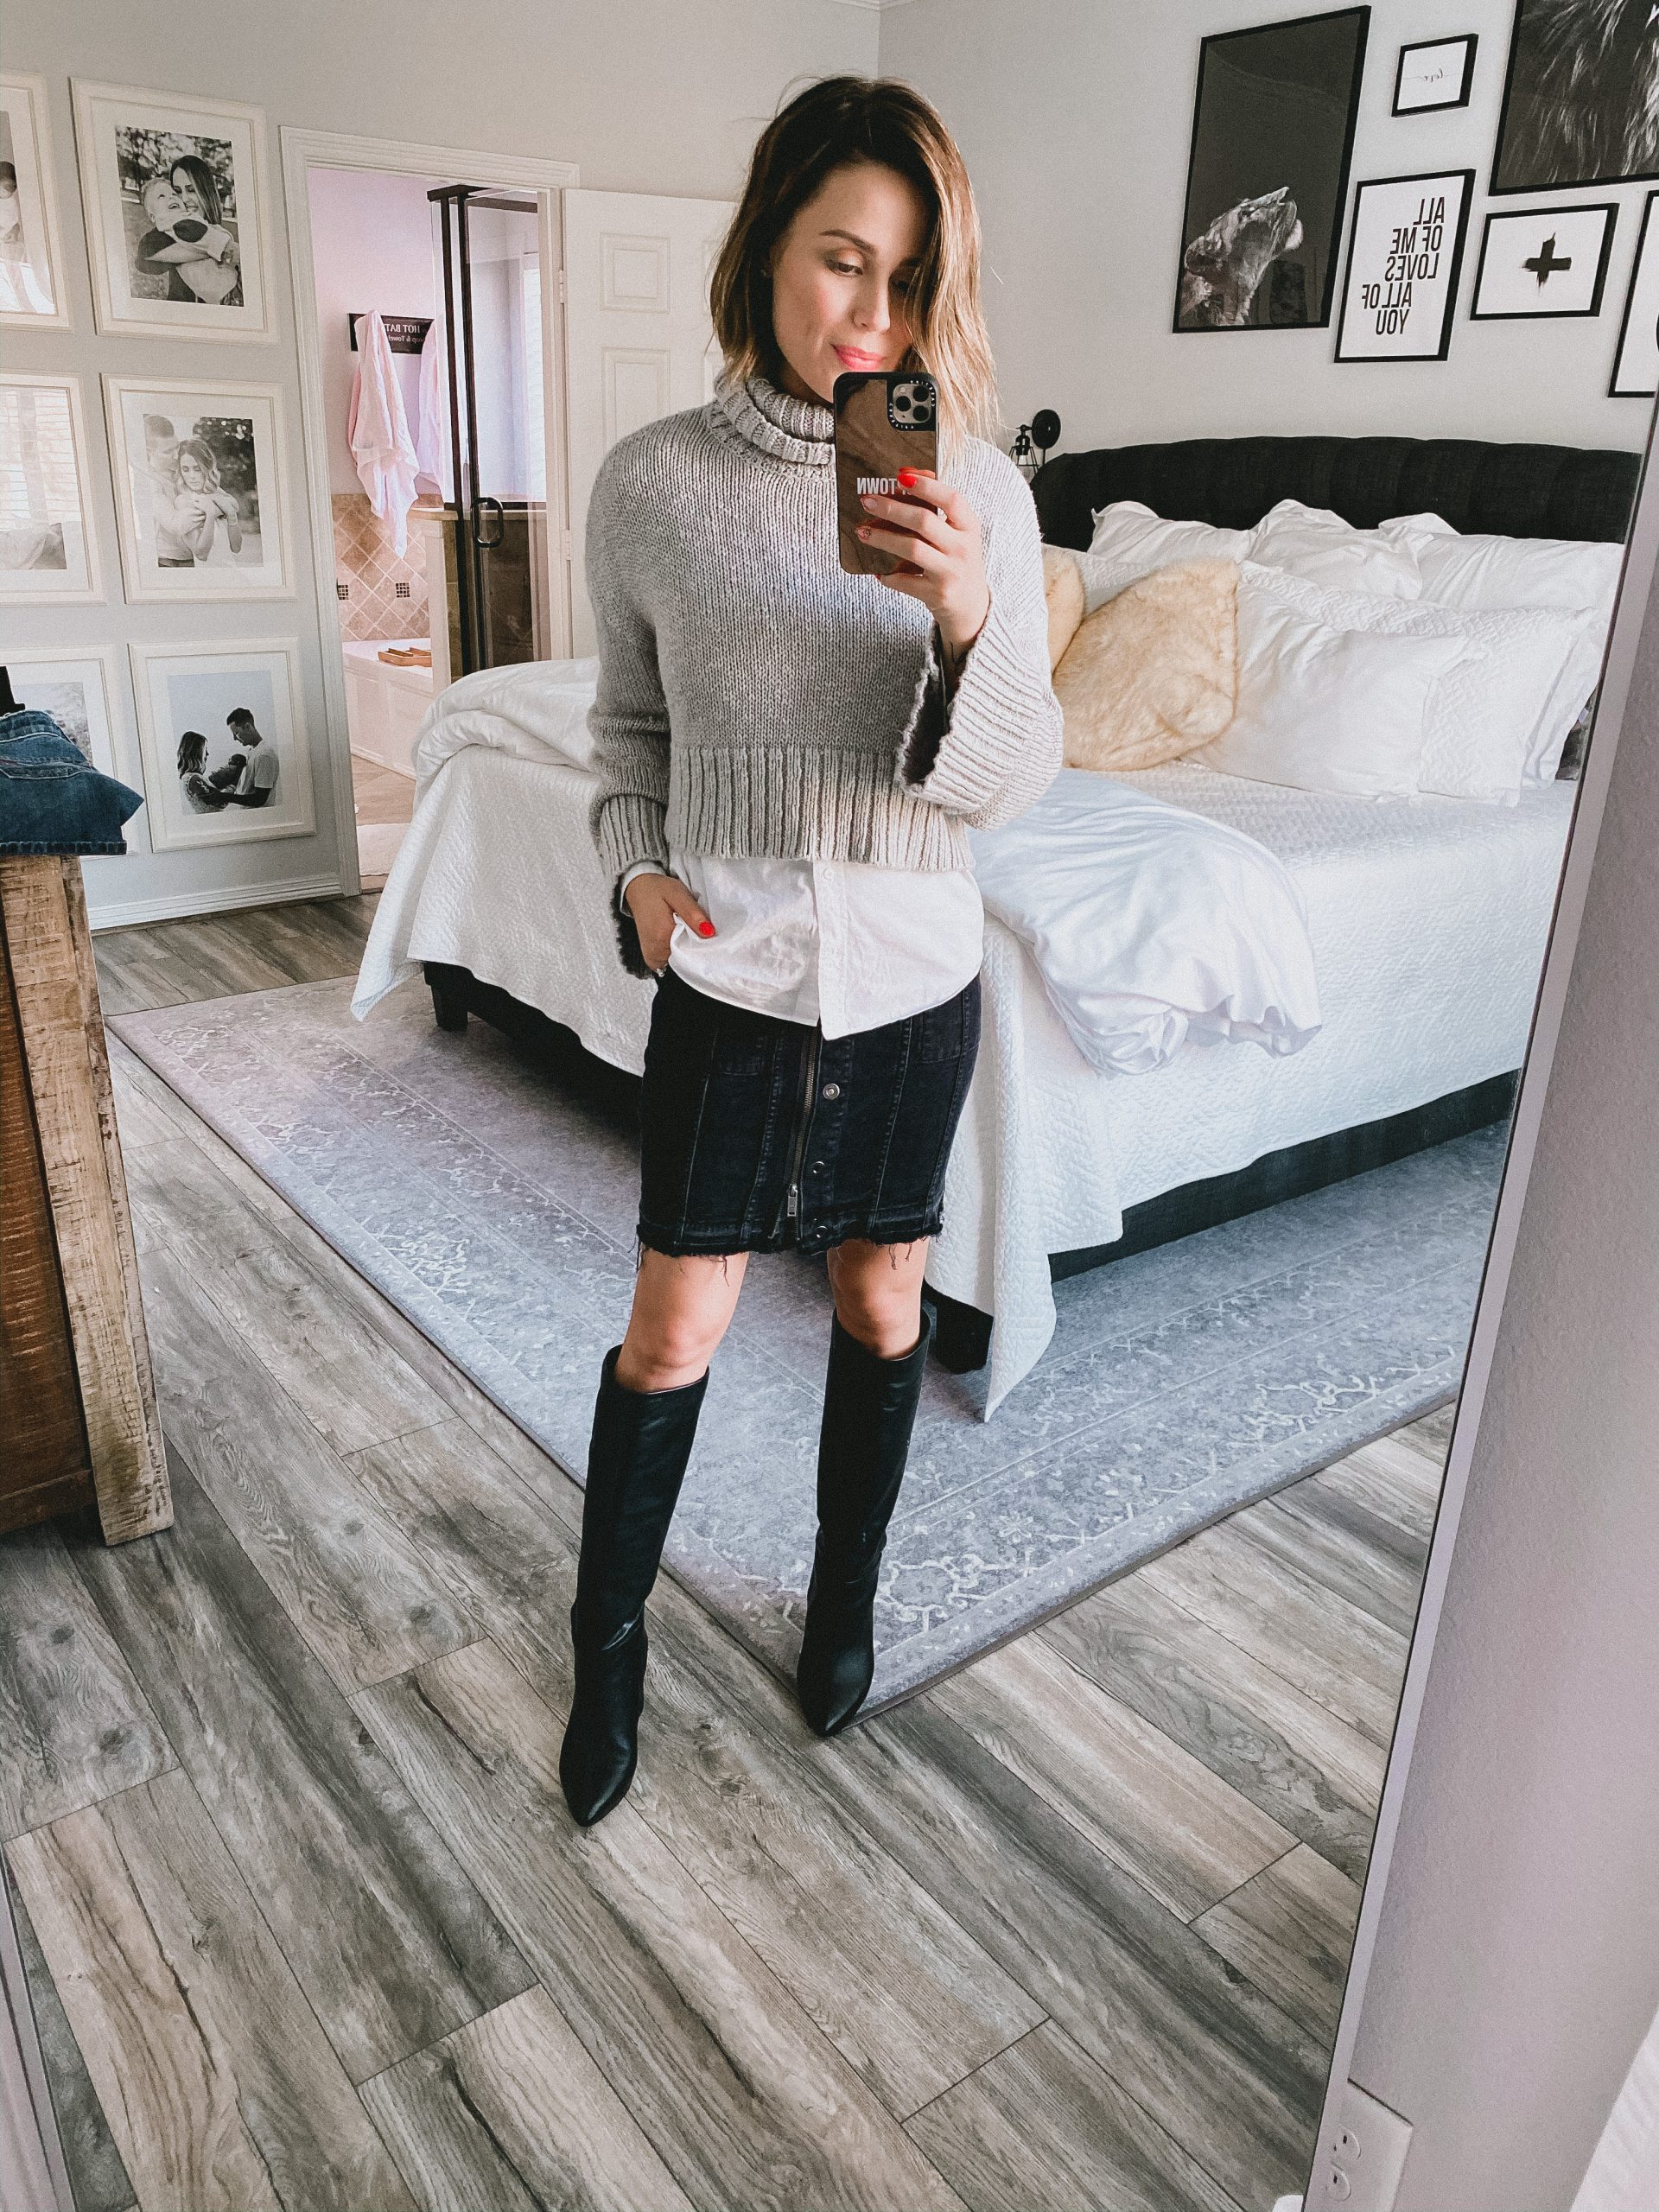 Houston fashion blogger Elly Brown wears a denim skirt with a Revolve sweater for a fall outfit